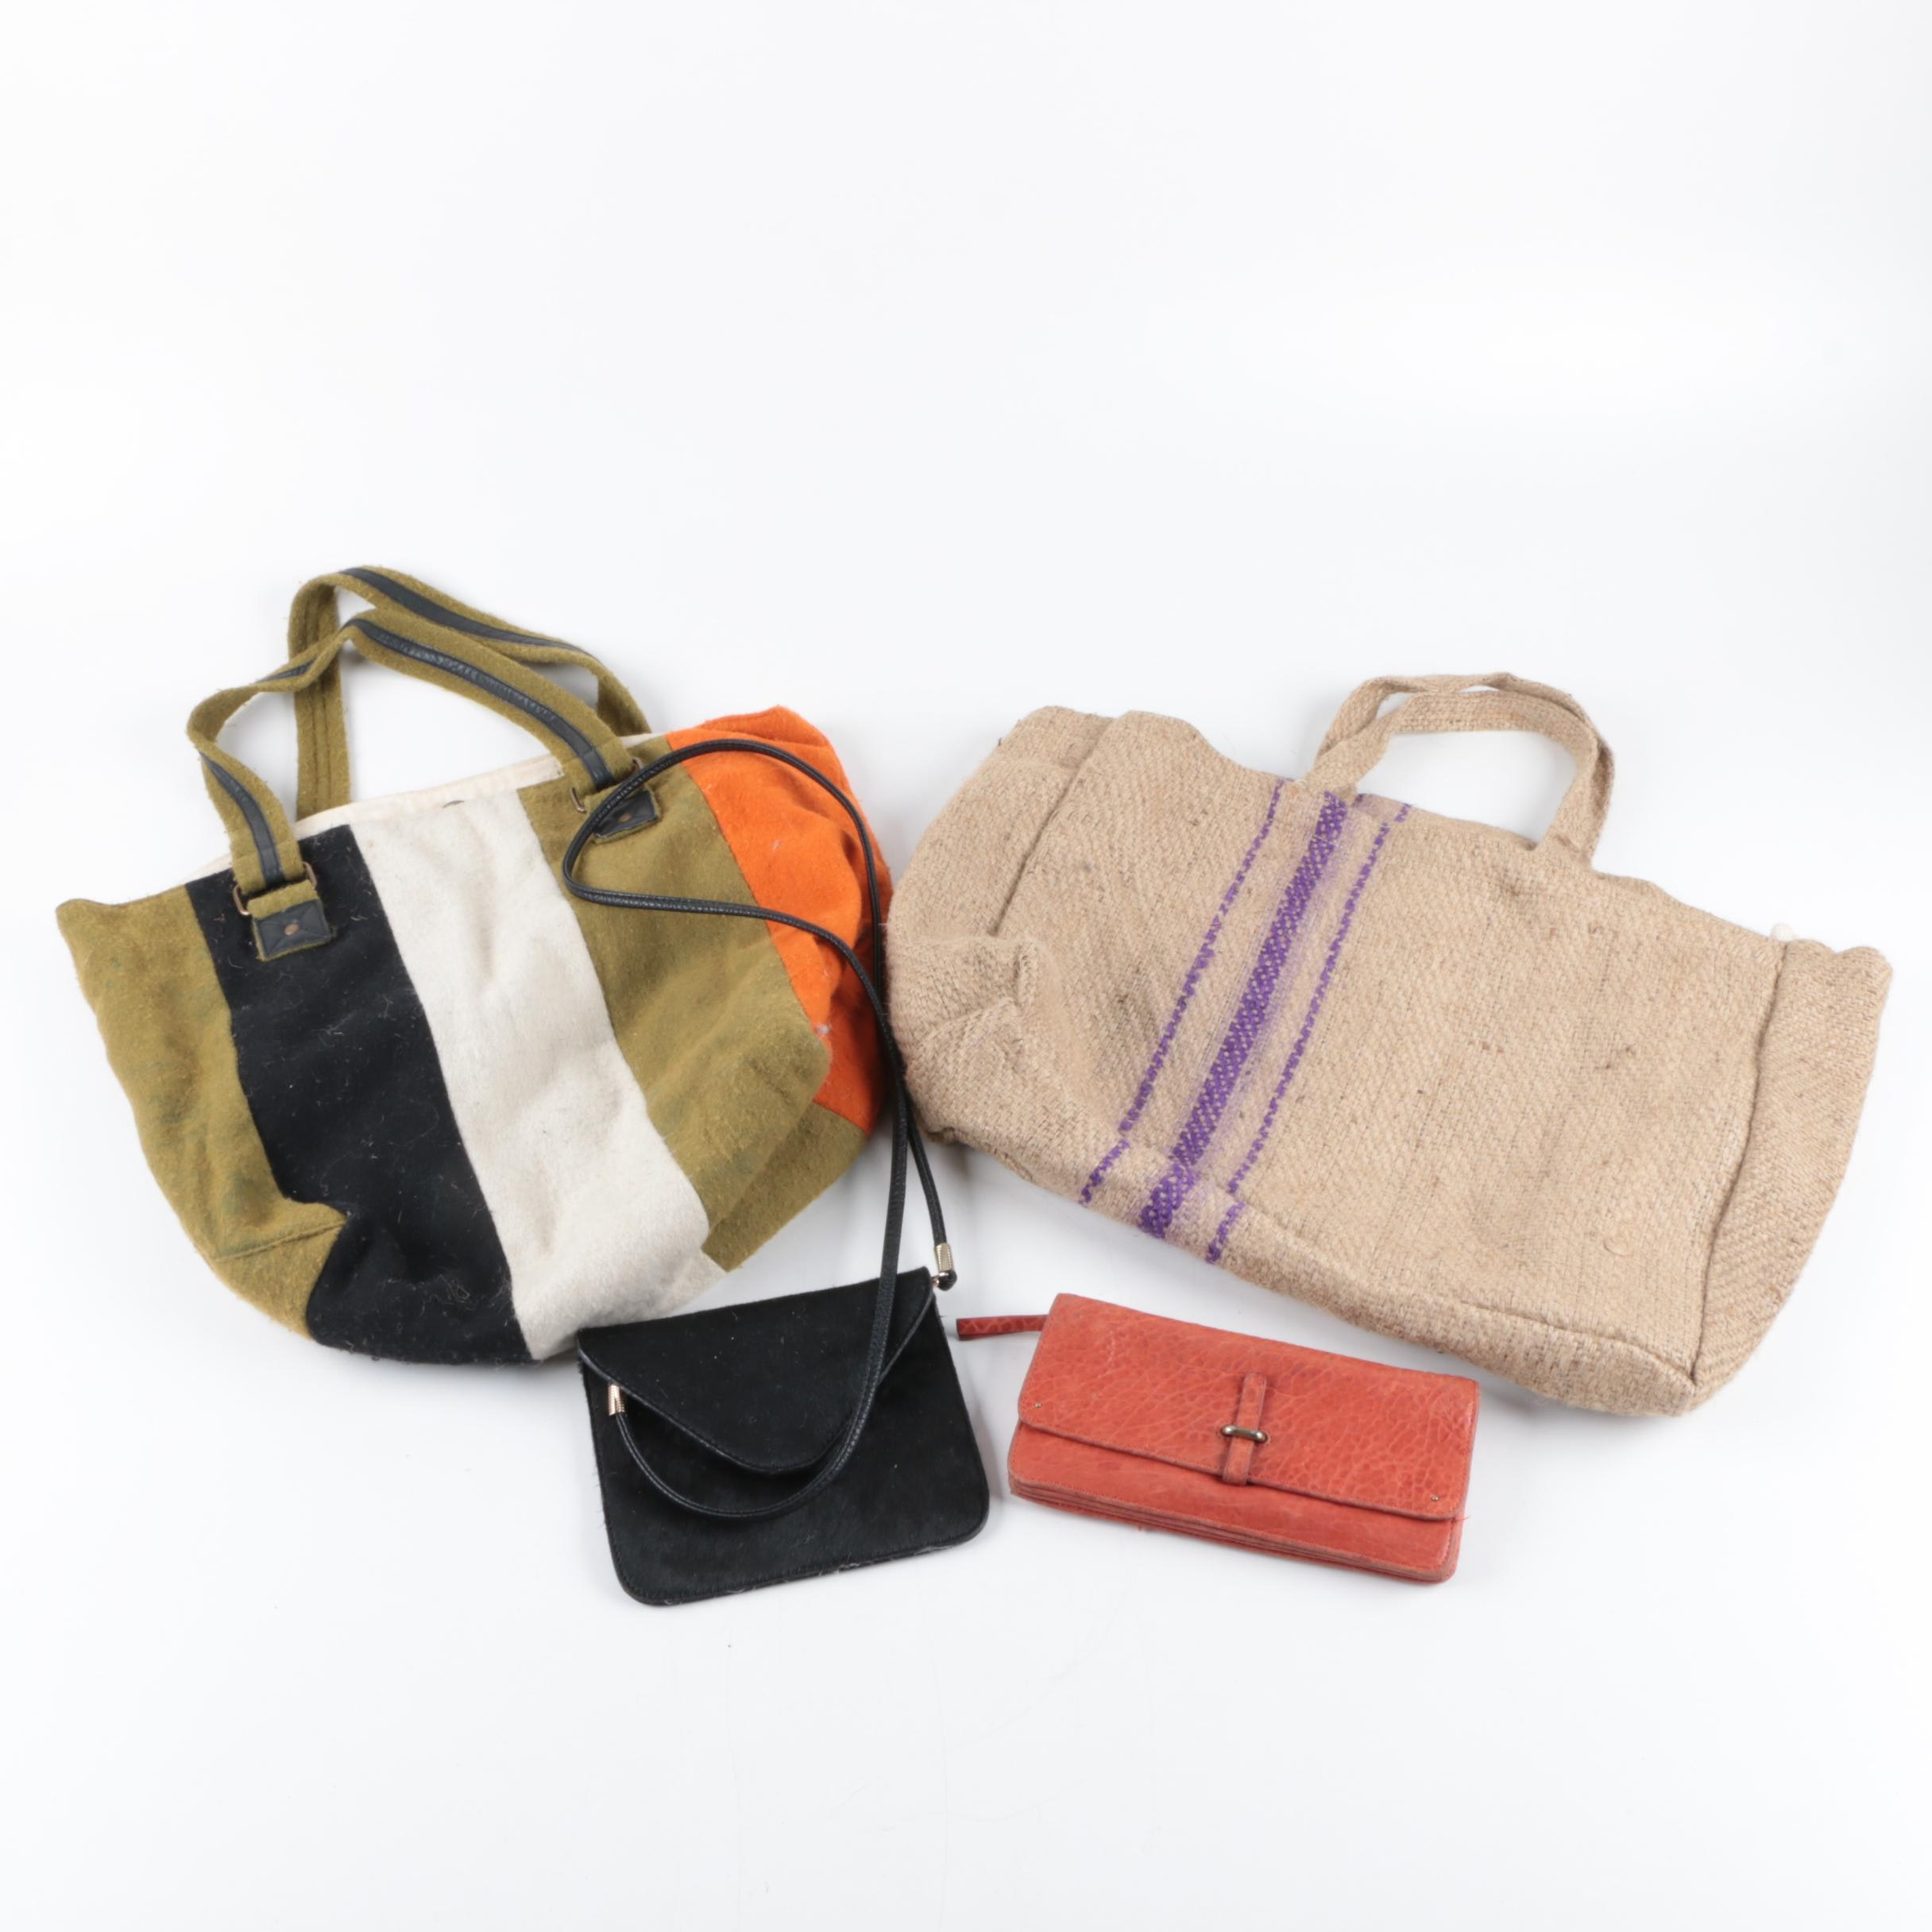 Pony Hair Mini Bag, Leather Wallet and Canvas Totes